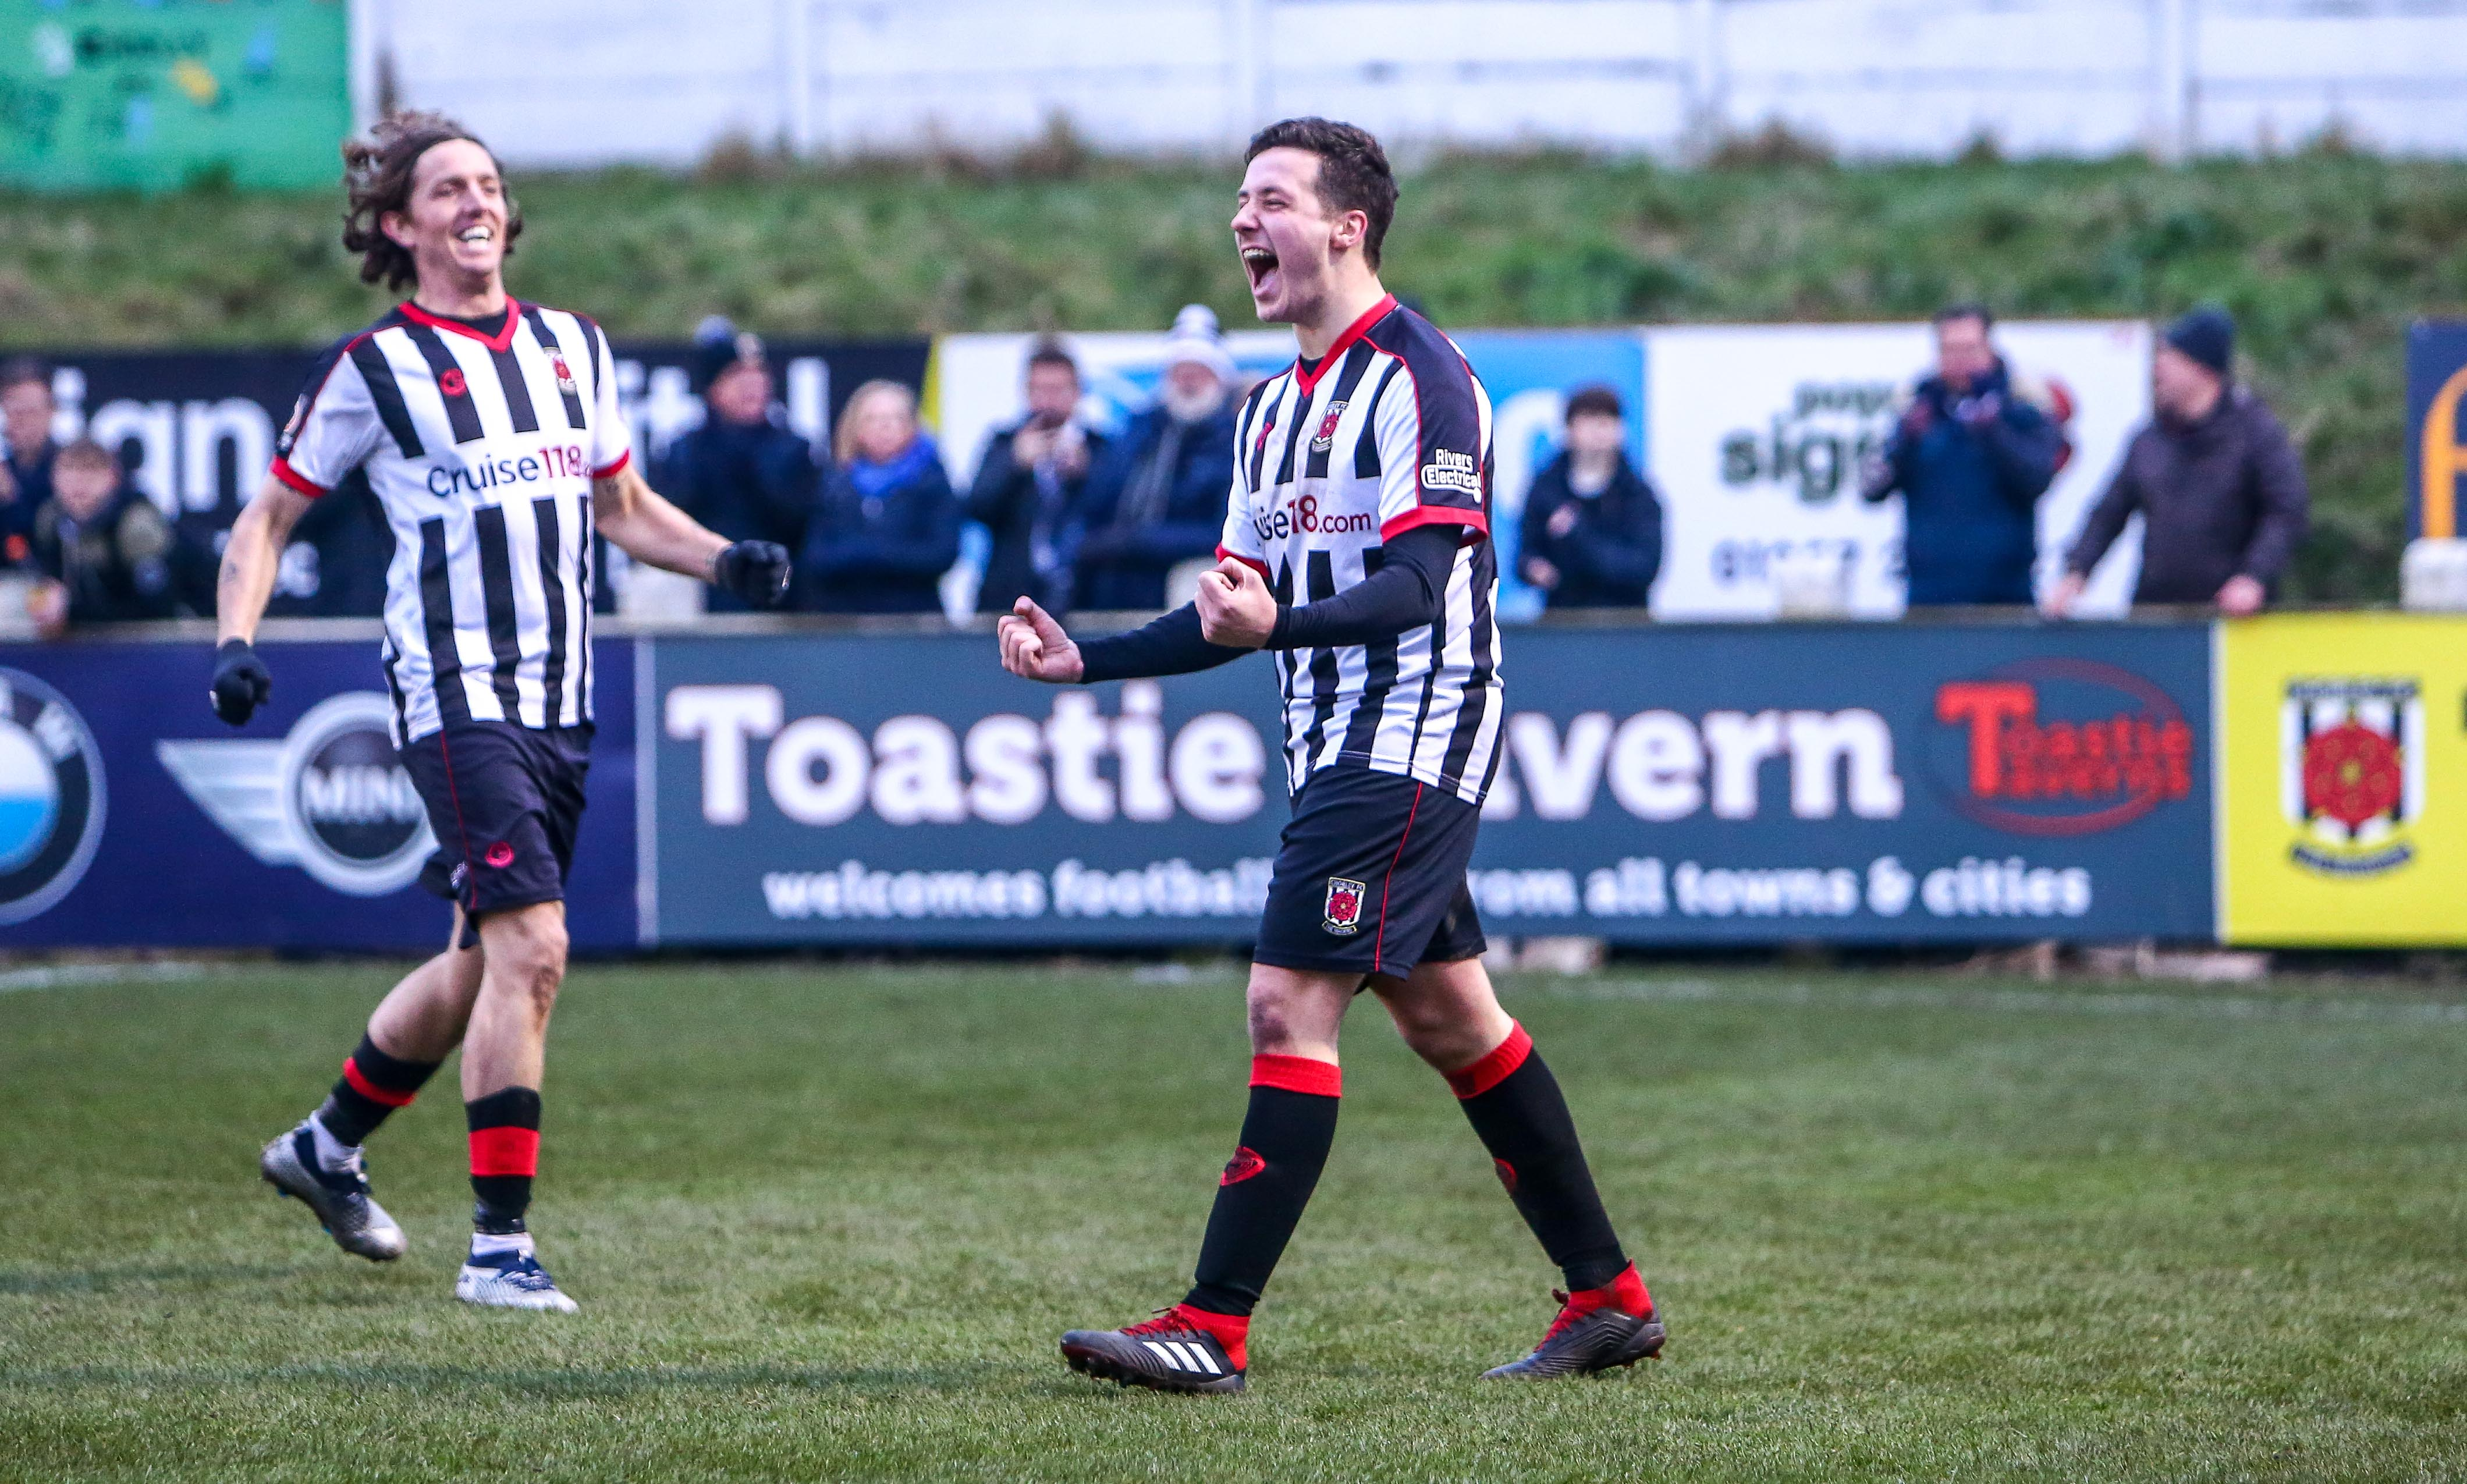 https://www.chorleyfc.com/wp-content/uploads/2019/01/BlakemanGuiseley.jpg